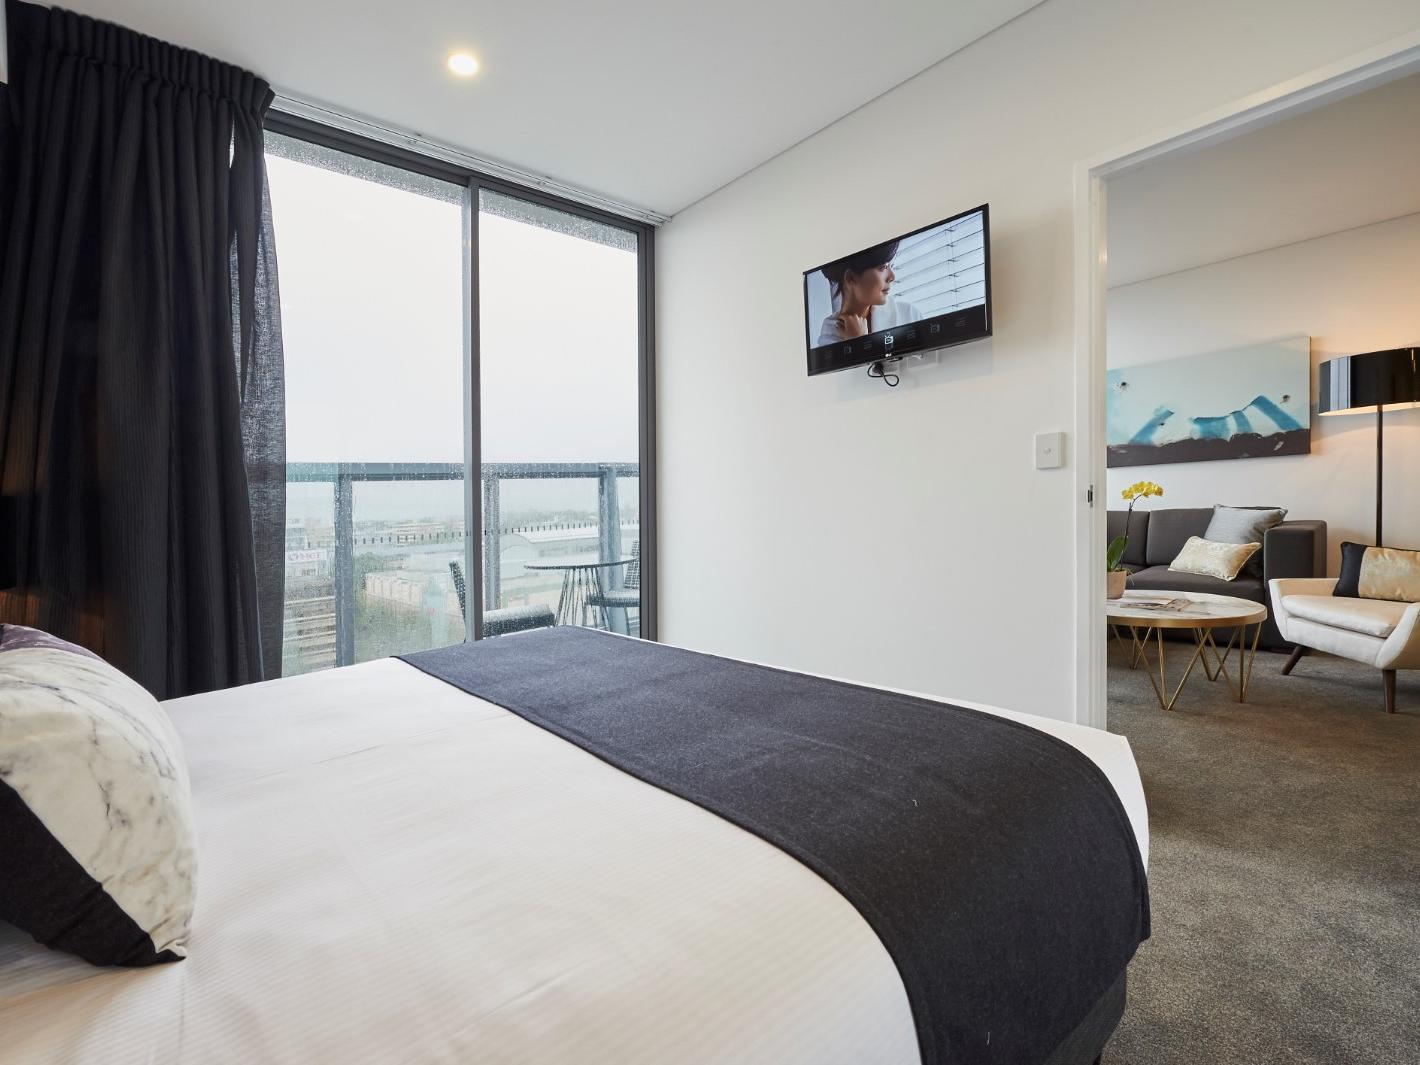 Terrace One Bedroom at Silkari Suites Chatswood